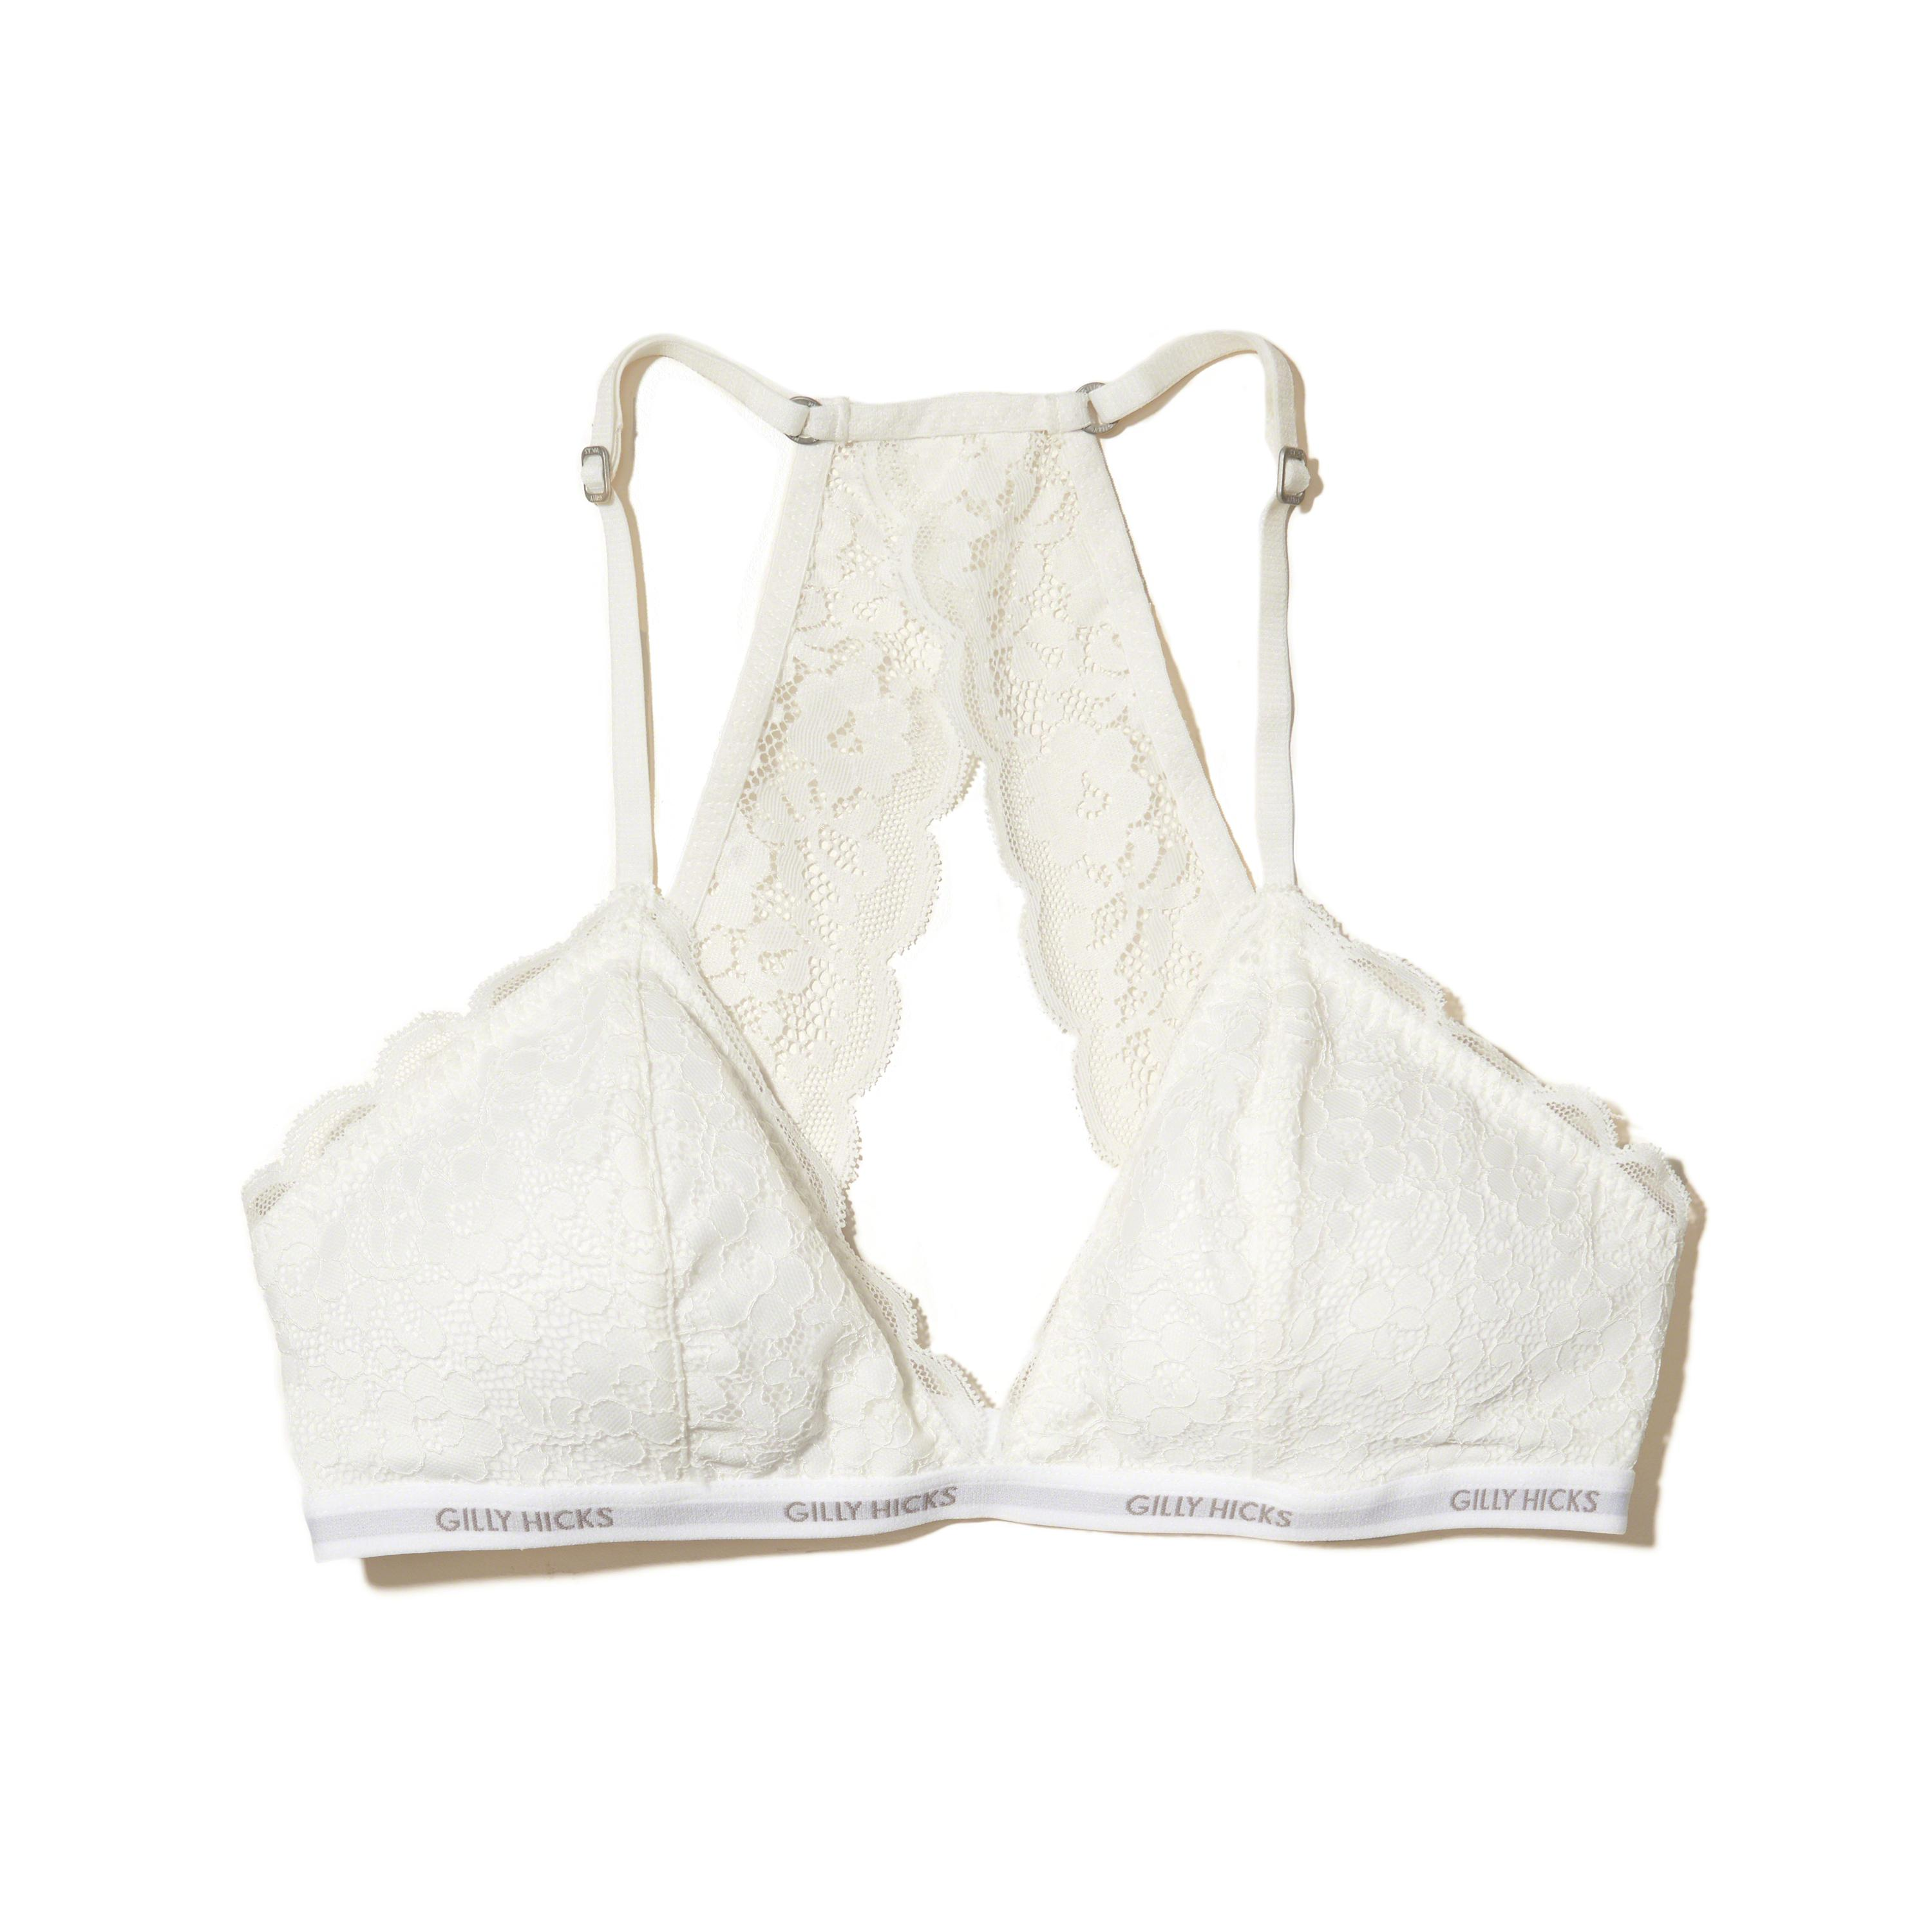 ef8b687fa03a0 Hollister Lace Racerback Triangle Bralette With Removable Pads in ...